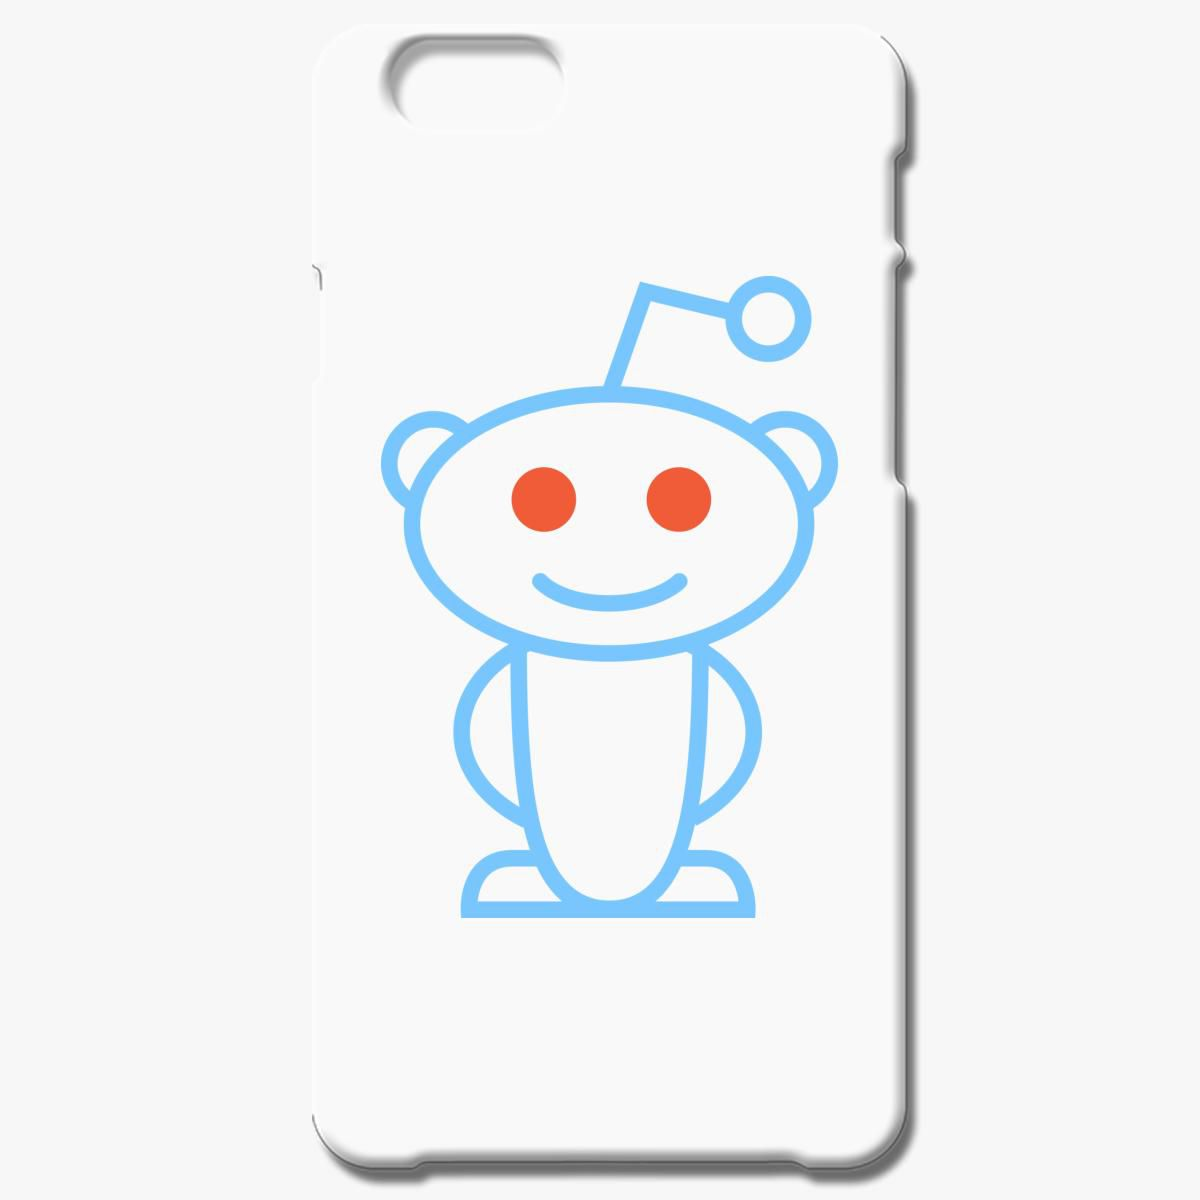 huge discount f8311 dbc0a Reddit Logo iPhone 6/6S Case - Customon